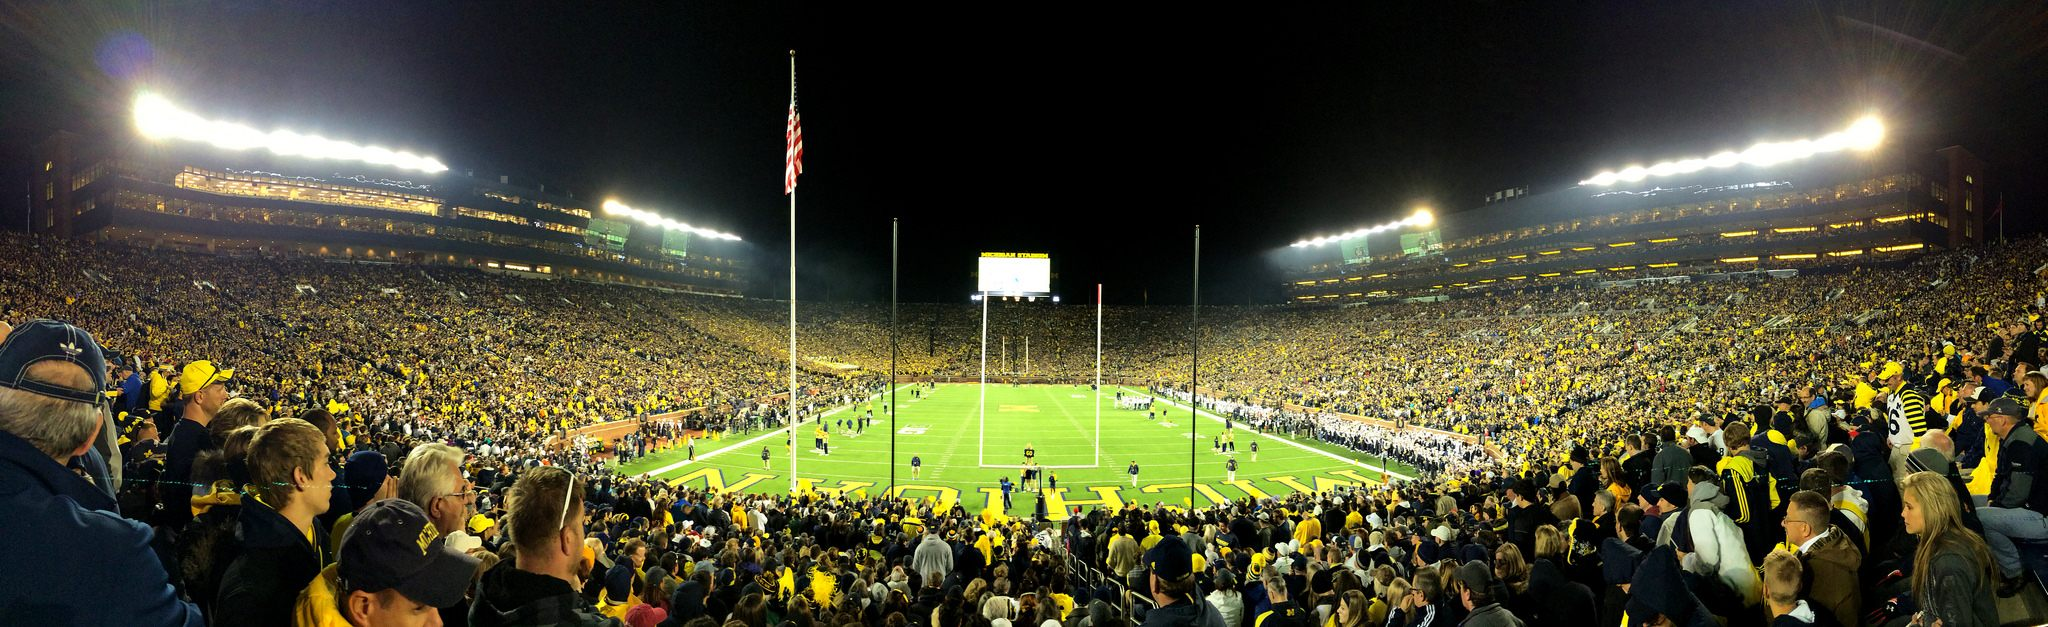 Michigan Stadium The Big House Stadiumdb Com